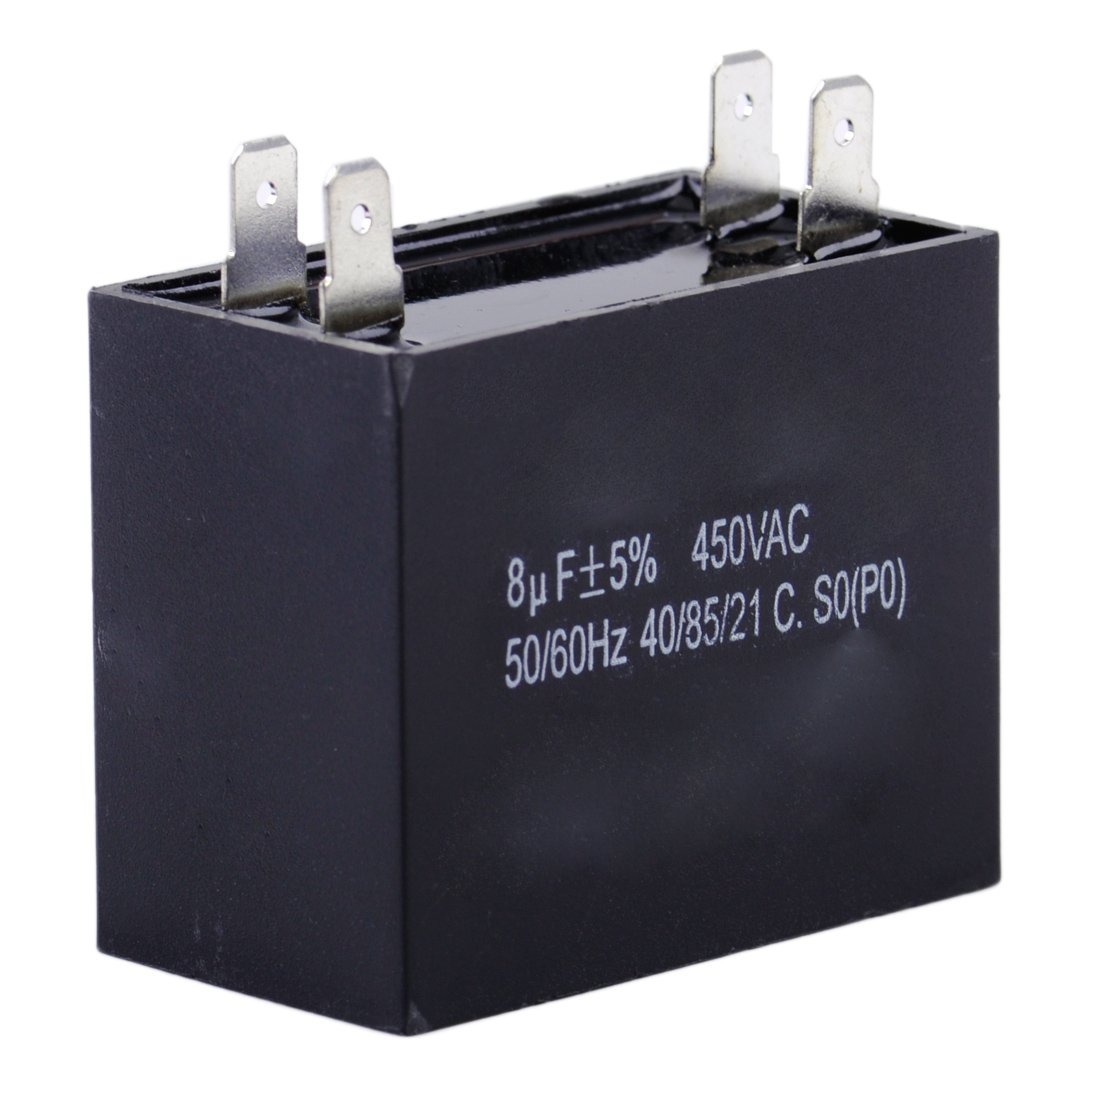 CBB61 8uF 450V AC 50//60Hz Air Conditioner Fan Motor Running Starting Capacitor